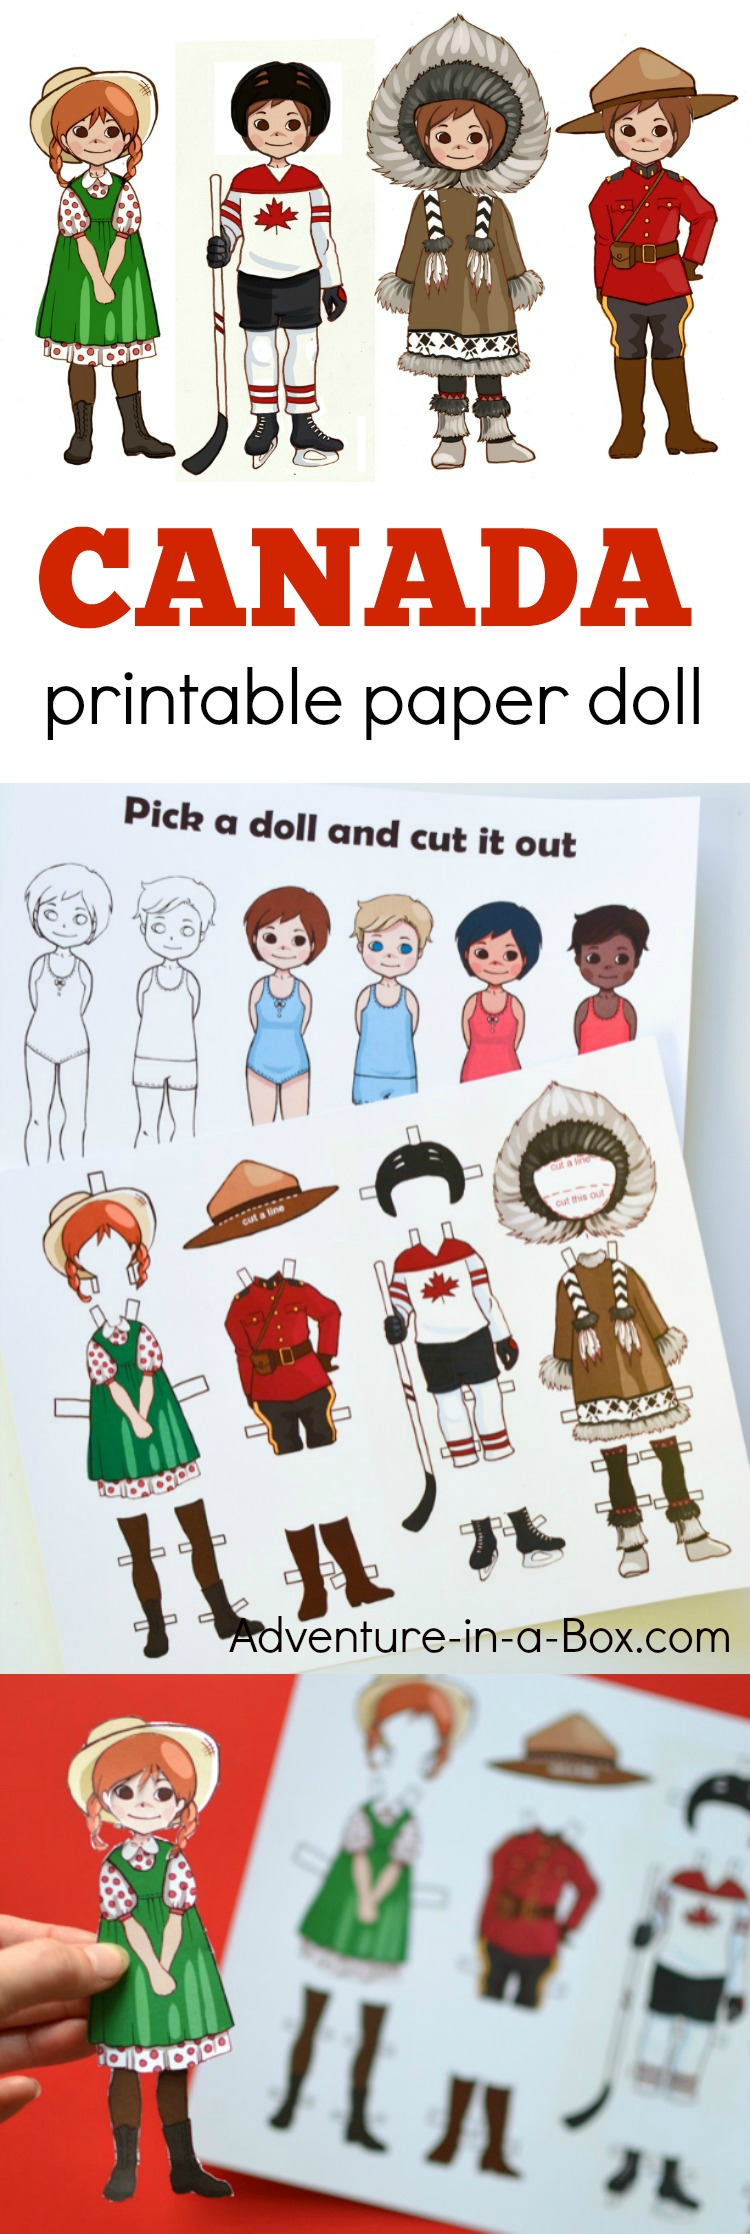 Canadian Dress Up Paper Doll With A Printable Template